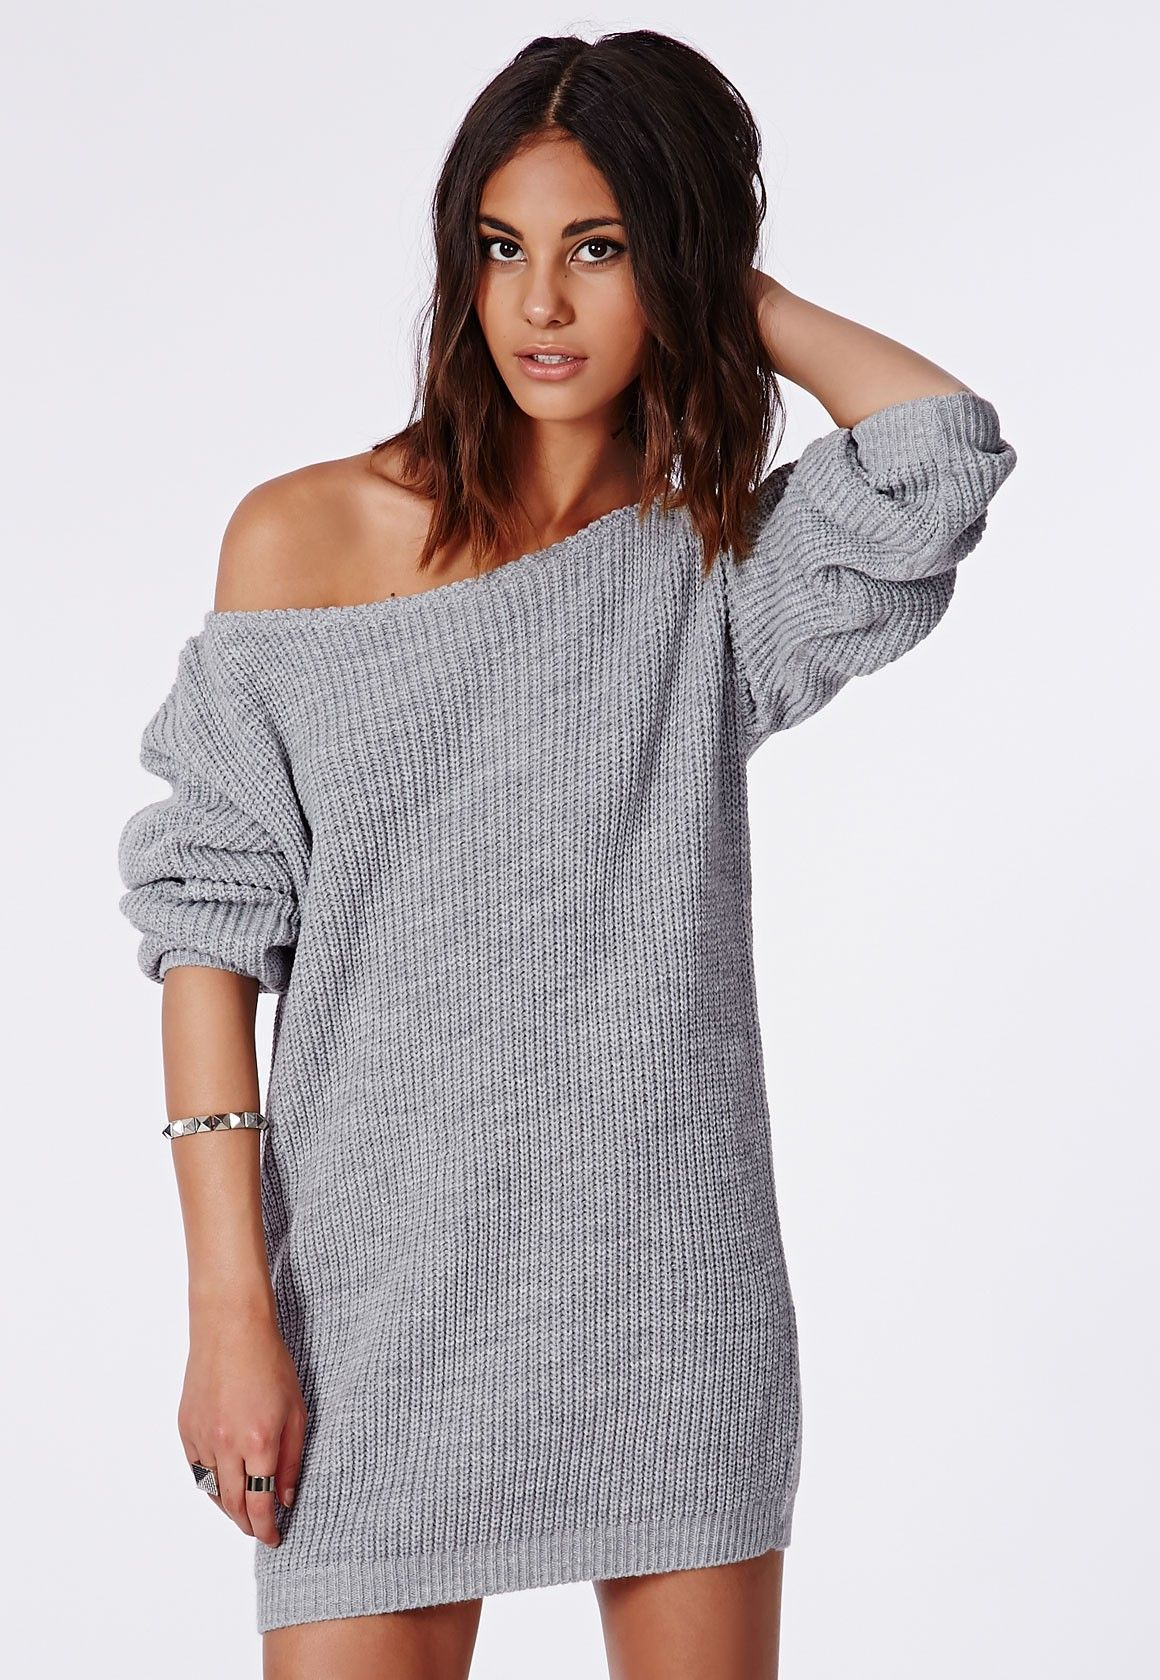 db0f4a4519a Missguided - Ayvan Off Shoulder Knitted Sweater Dress Grey | Fashion ...